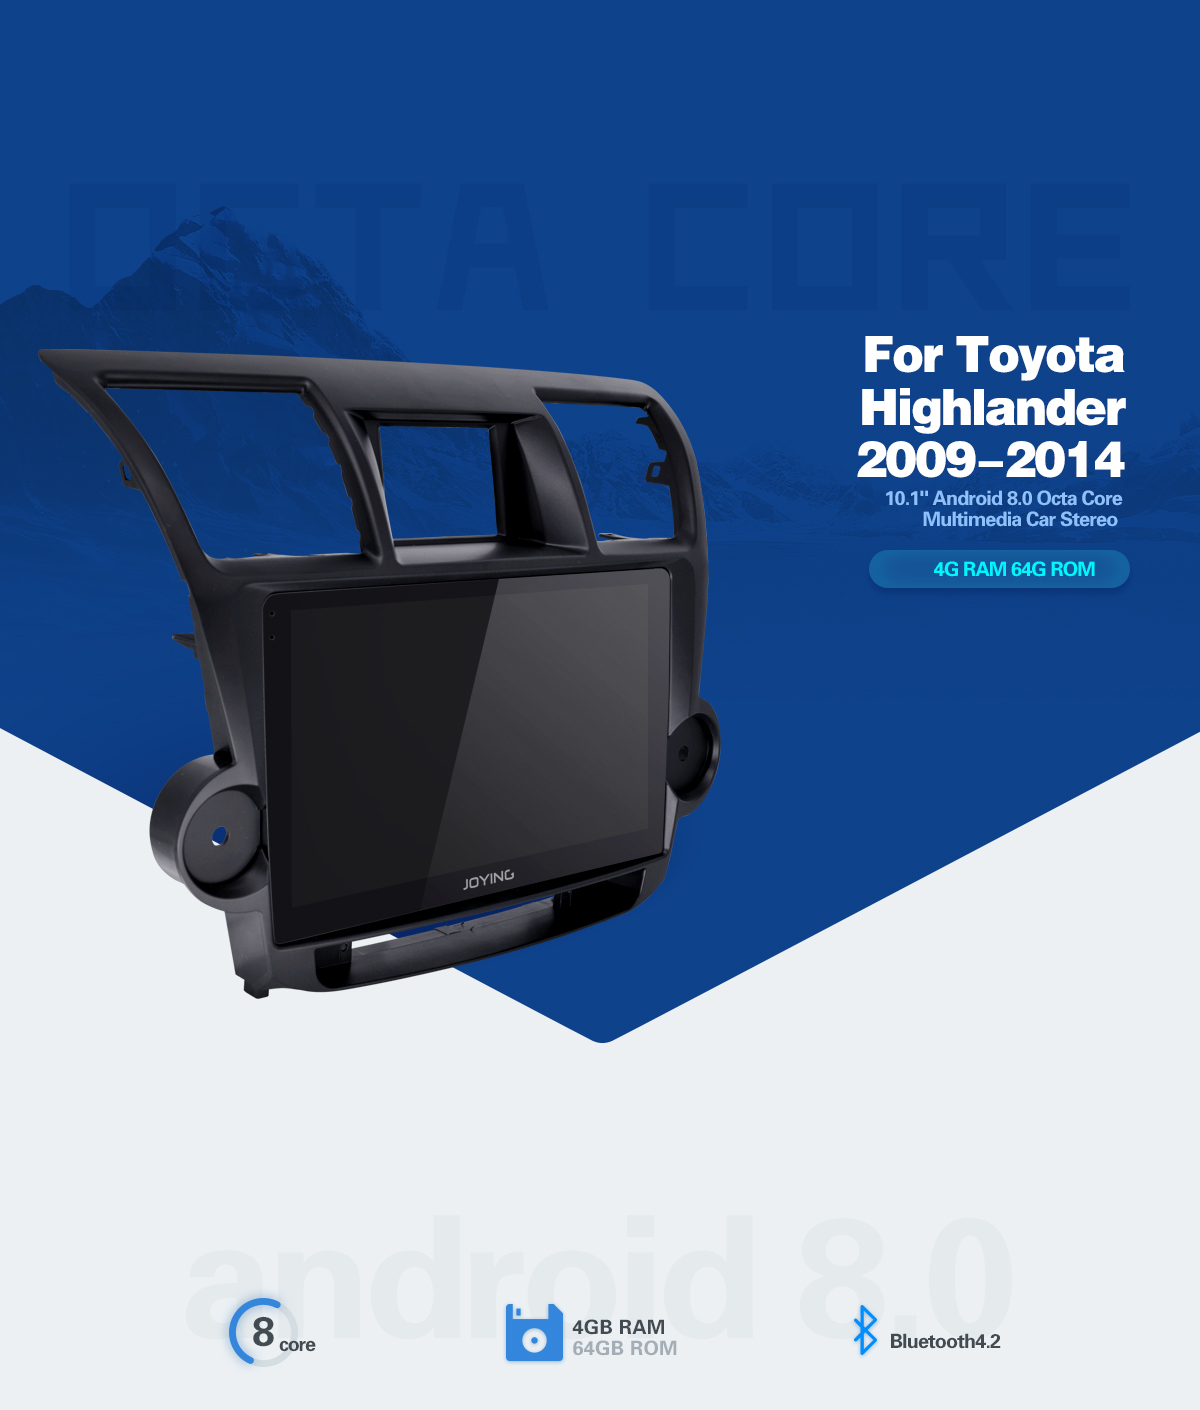 Joying Android 80 Toyota Highlander 2009 2014 Car Audio System 2010 Kluger Fuse Box Location If You Are Not Sure Whether The Unit Can Fit Your Carplease Send Modelyear And Dashboard Picture To Info Or Support